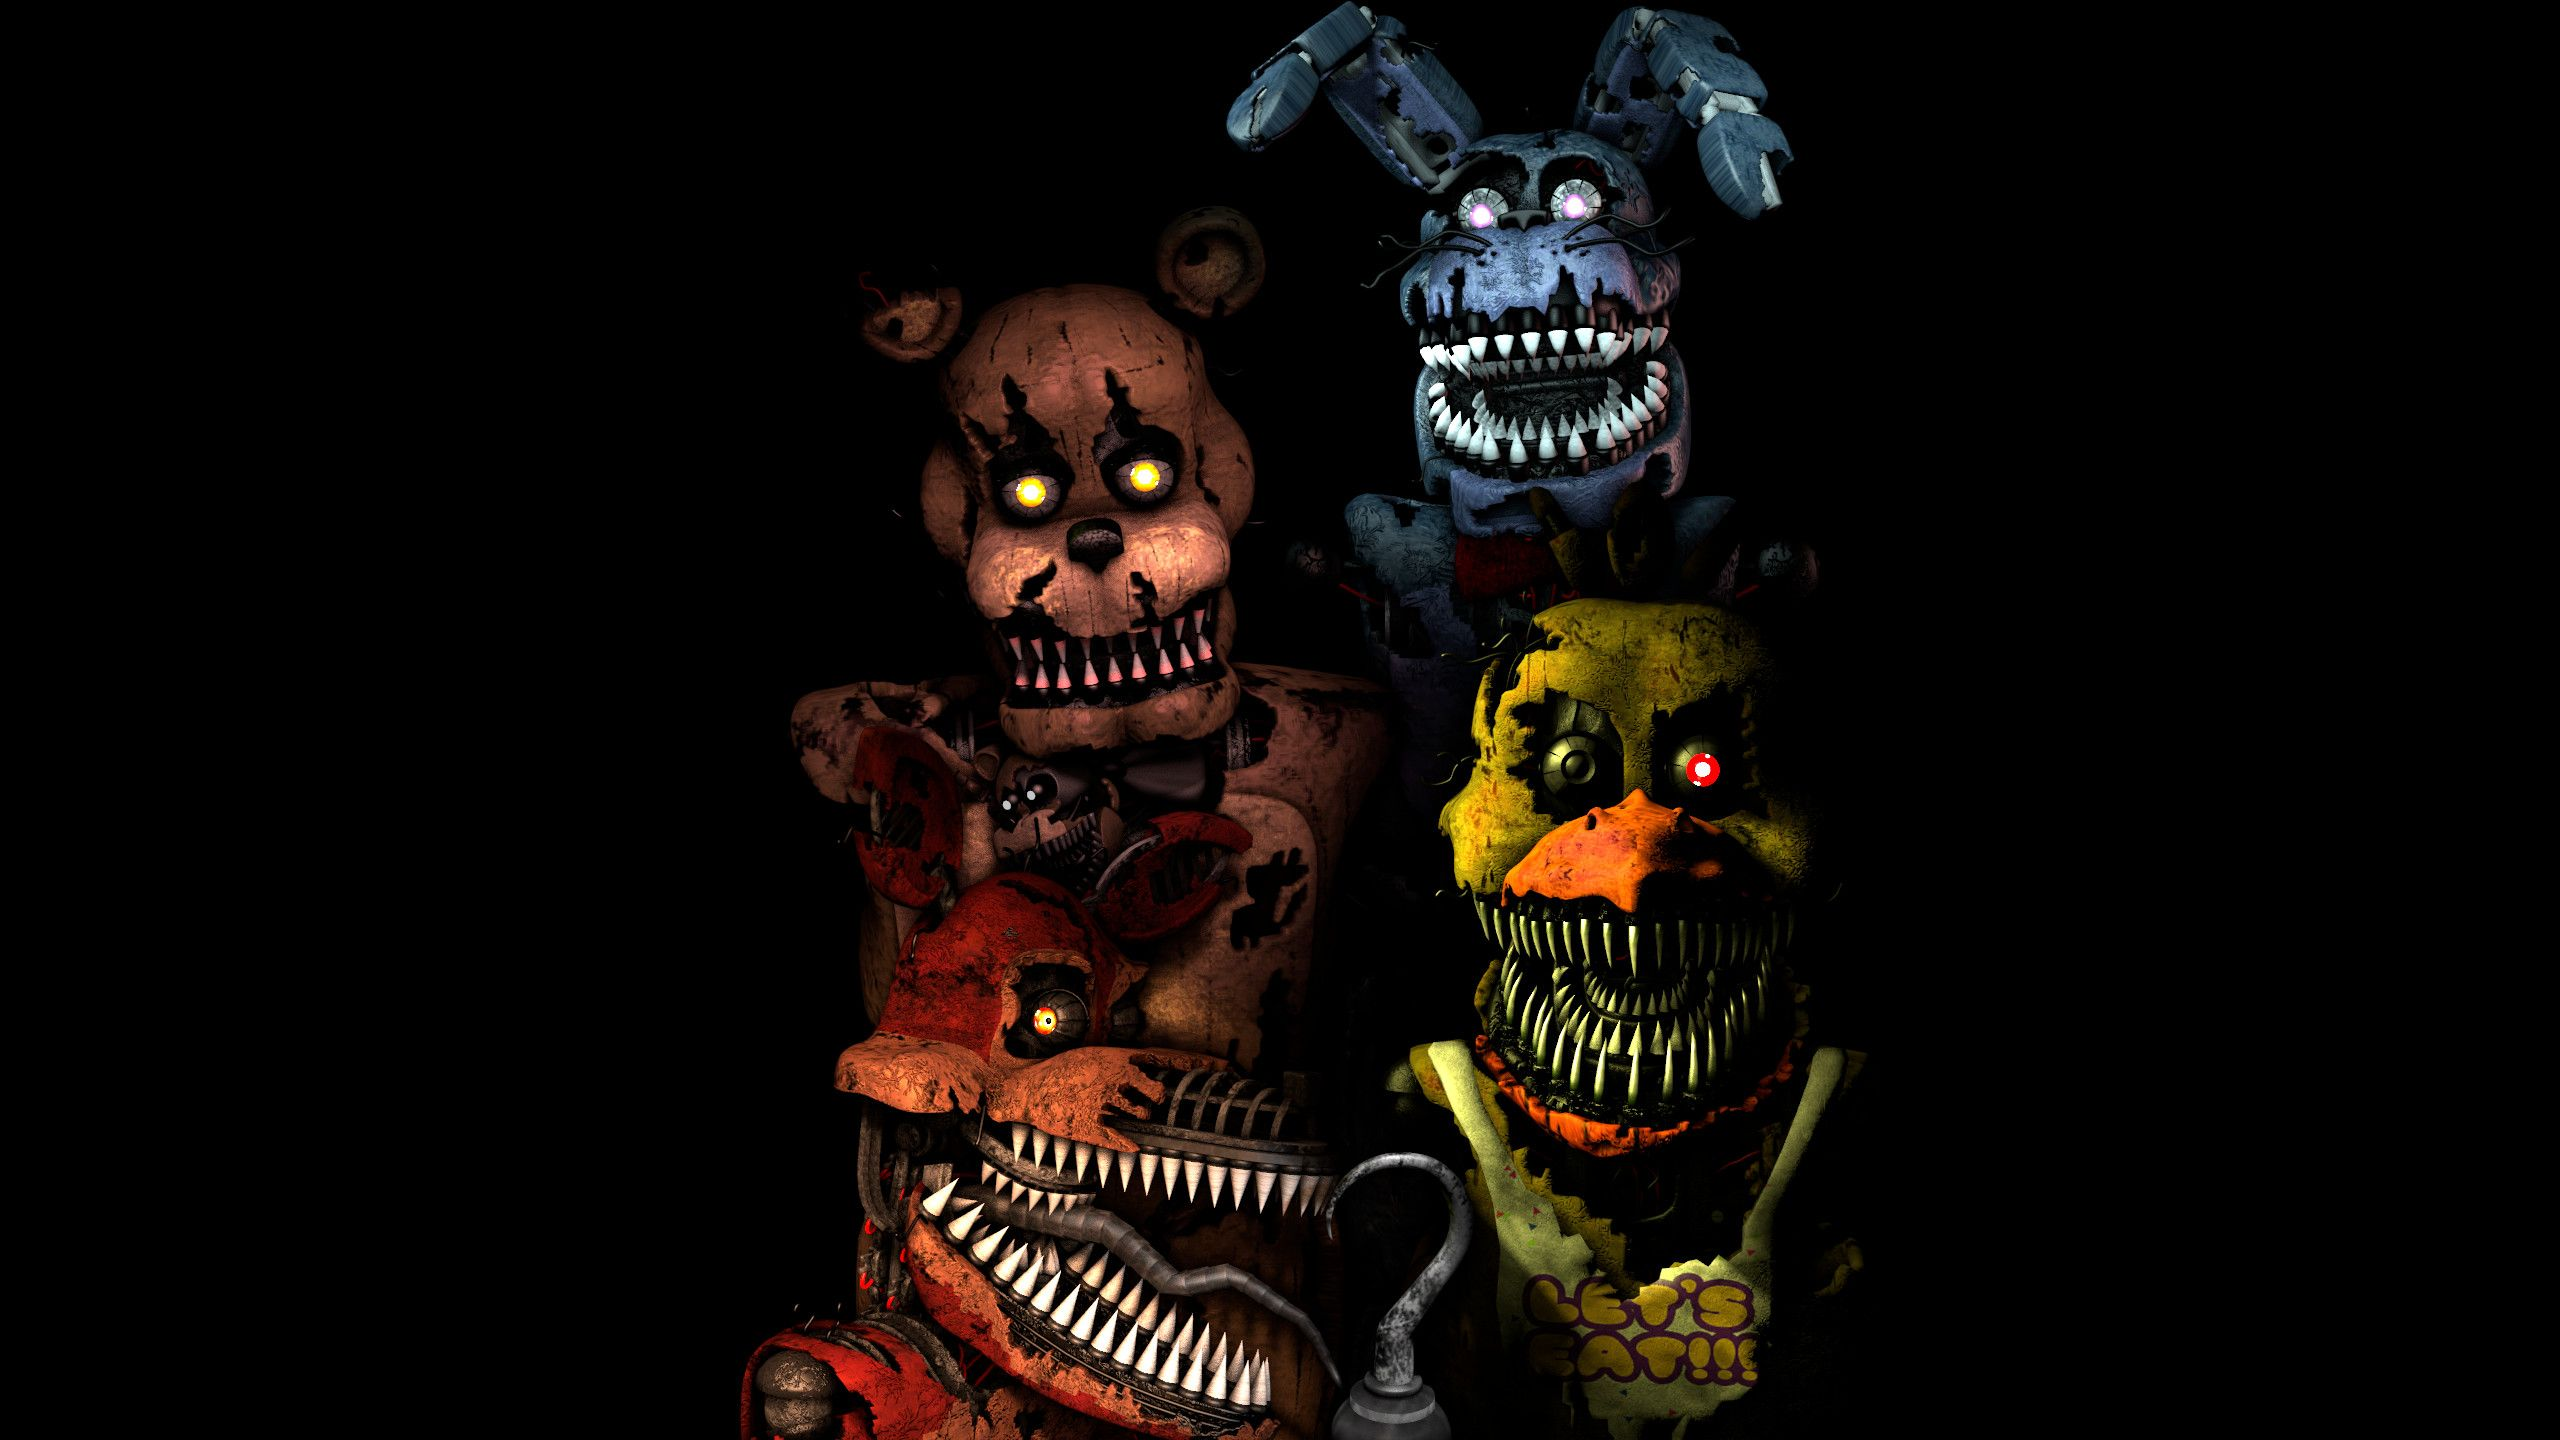 86 Fnaf Desktop Wallpapers On Wallpaperplay